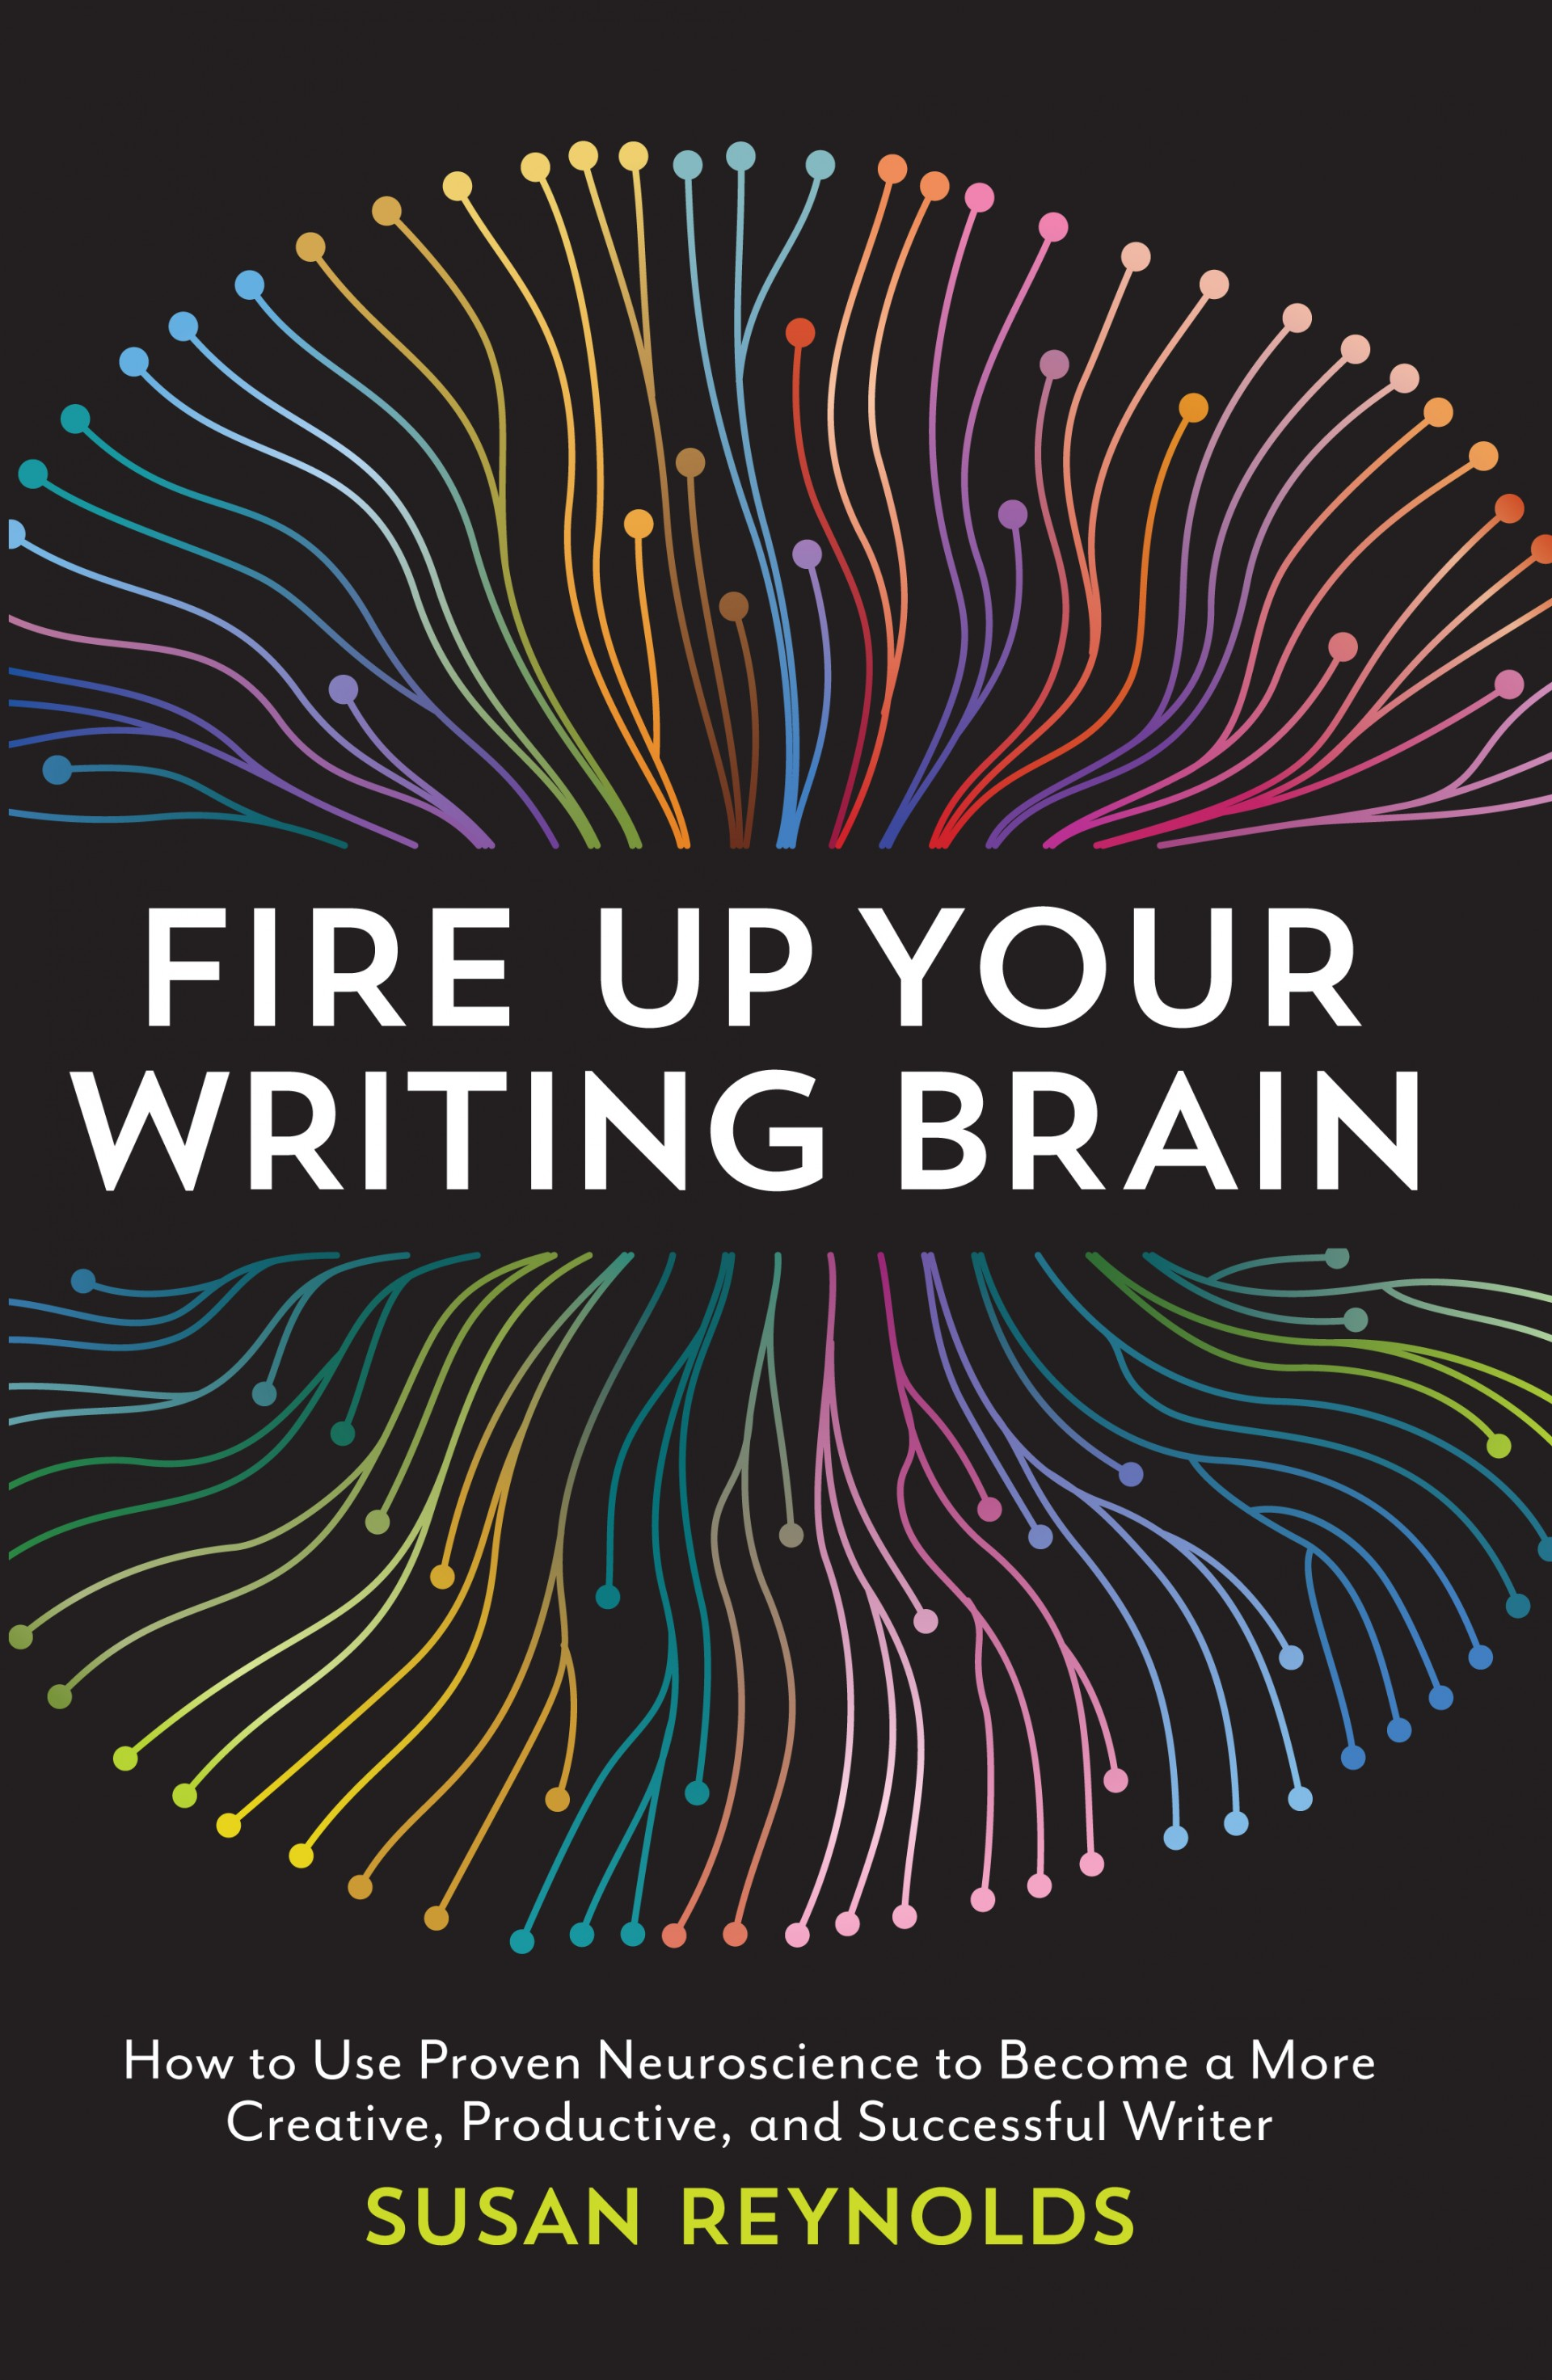 019 Essay Example Fire Up Your Writing Brain Models For Writers Short Essays Singular Composition 12th Edition 13th Pdf 1920